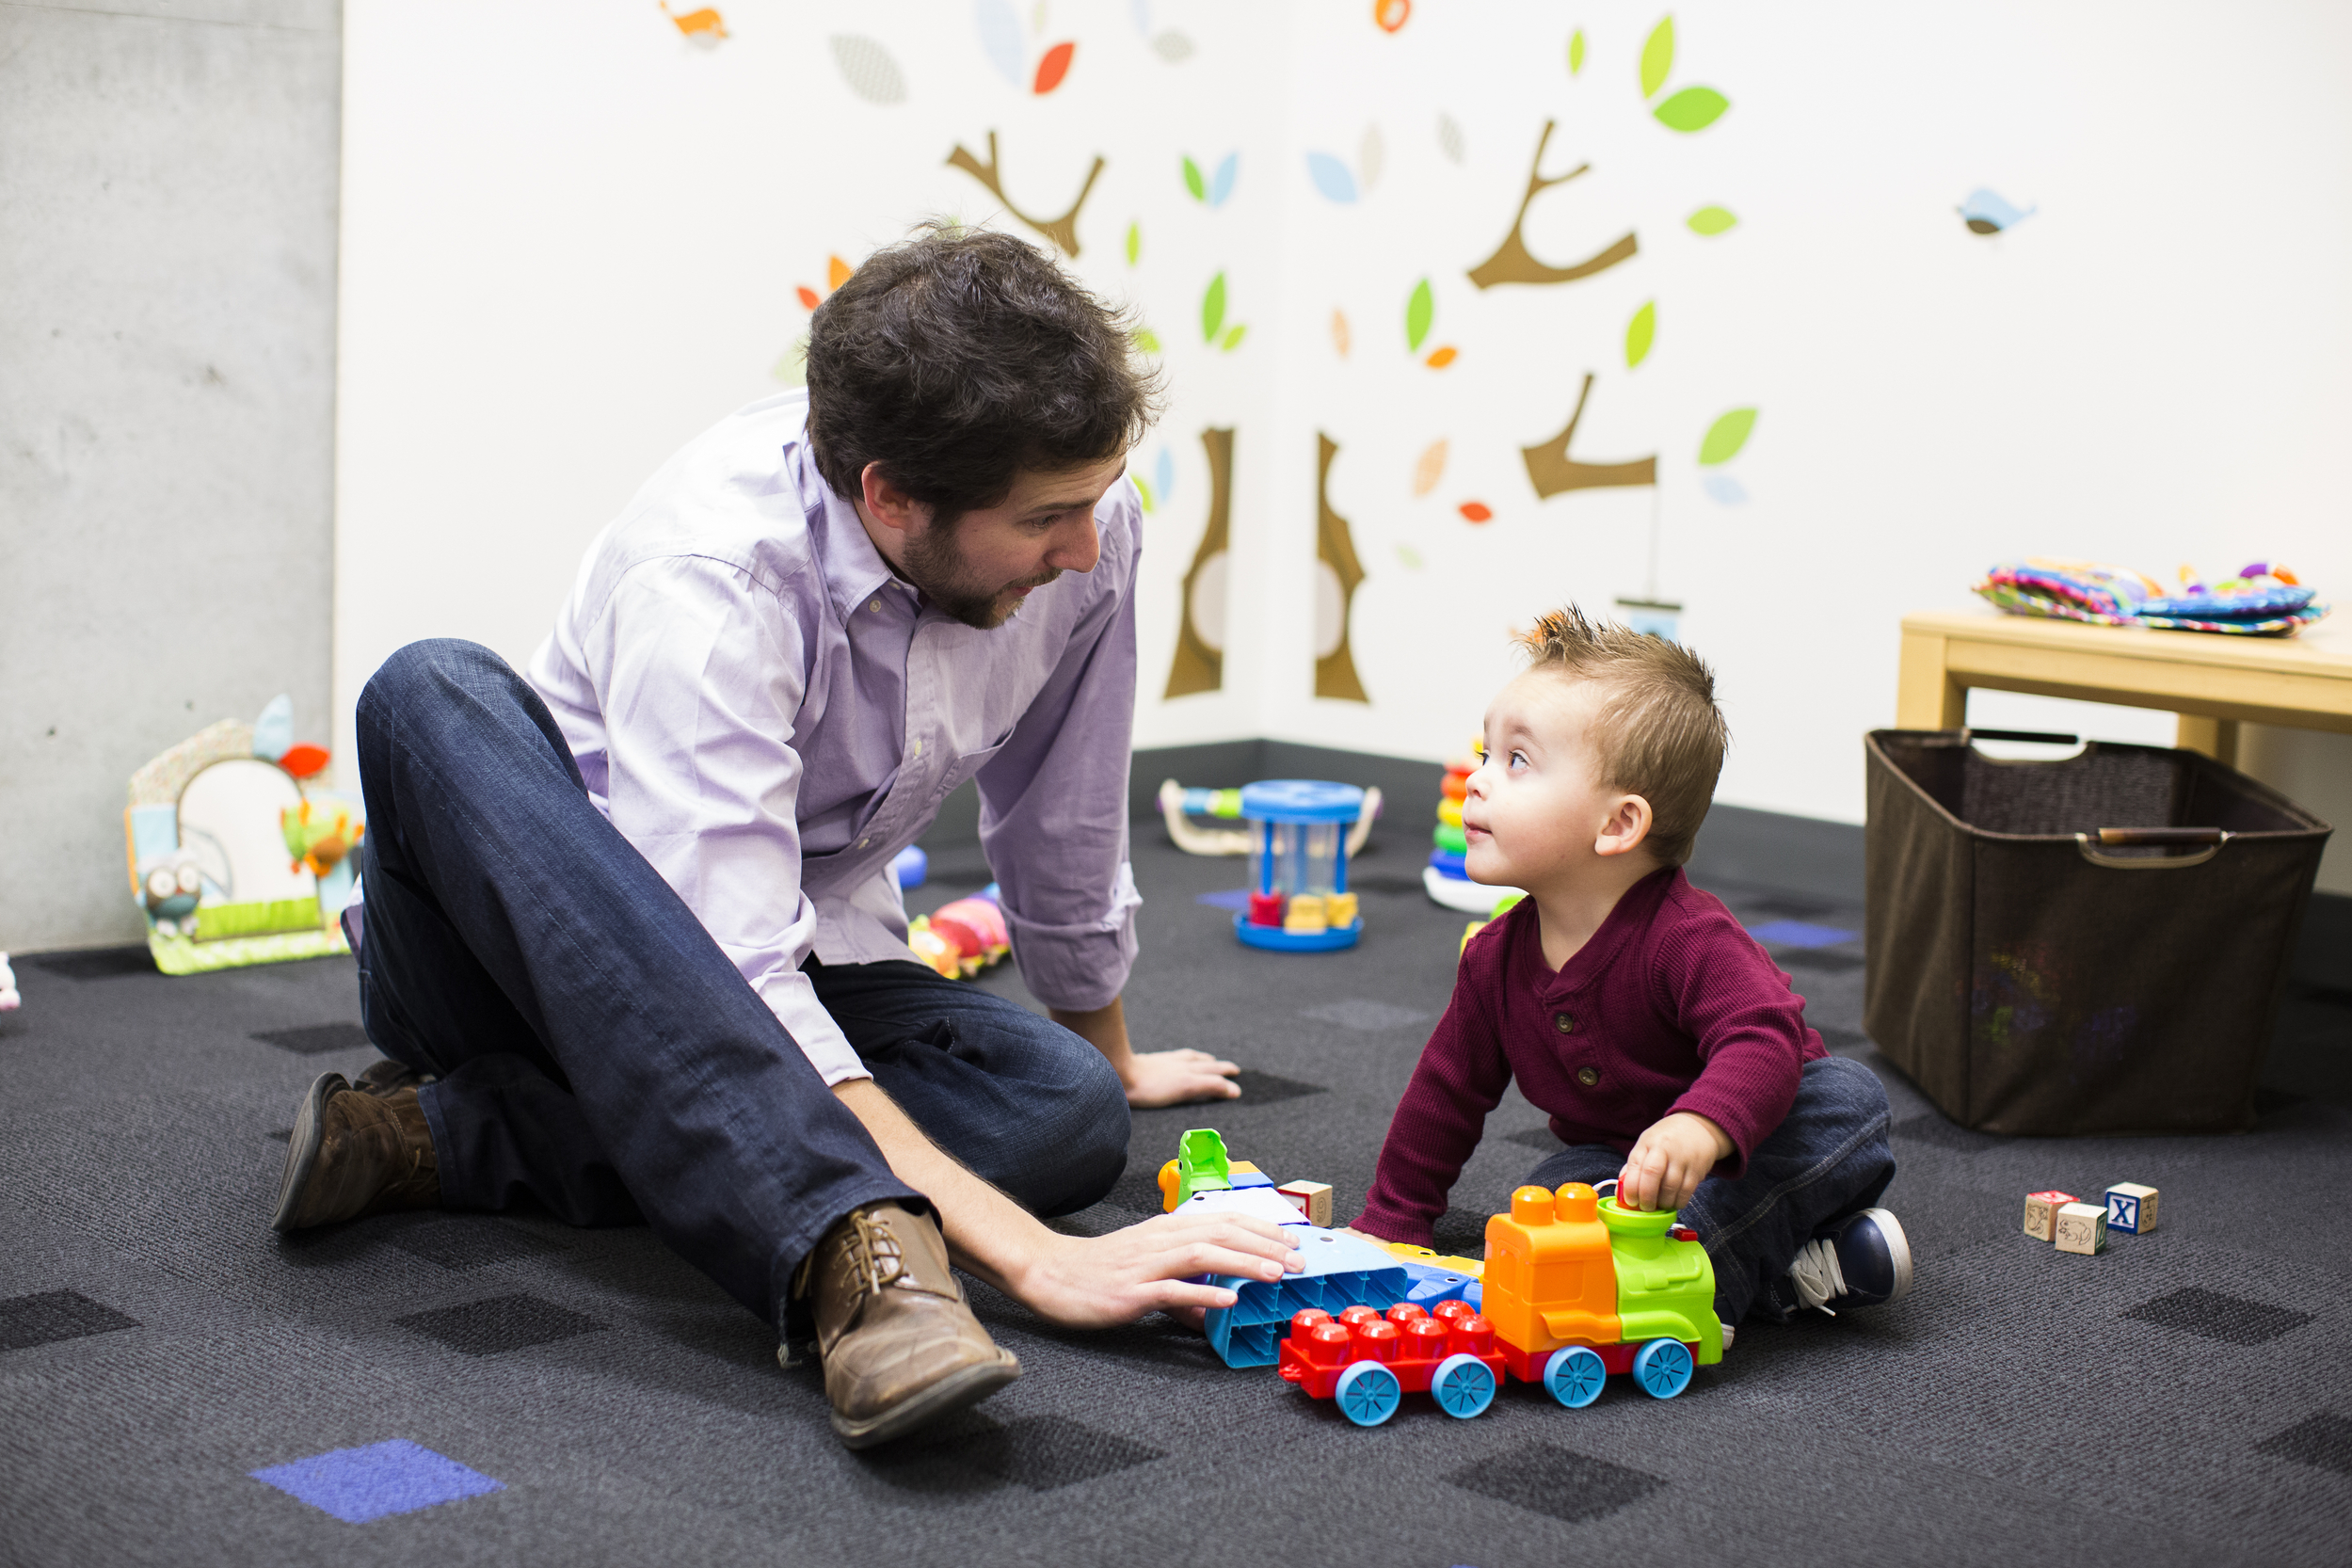 Professor Eric Walle with child psychology subject.